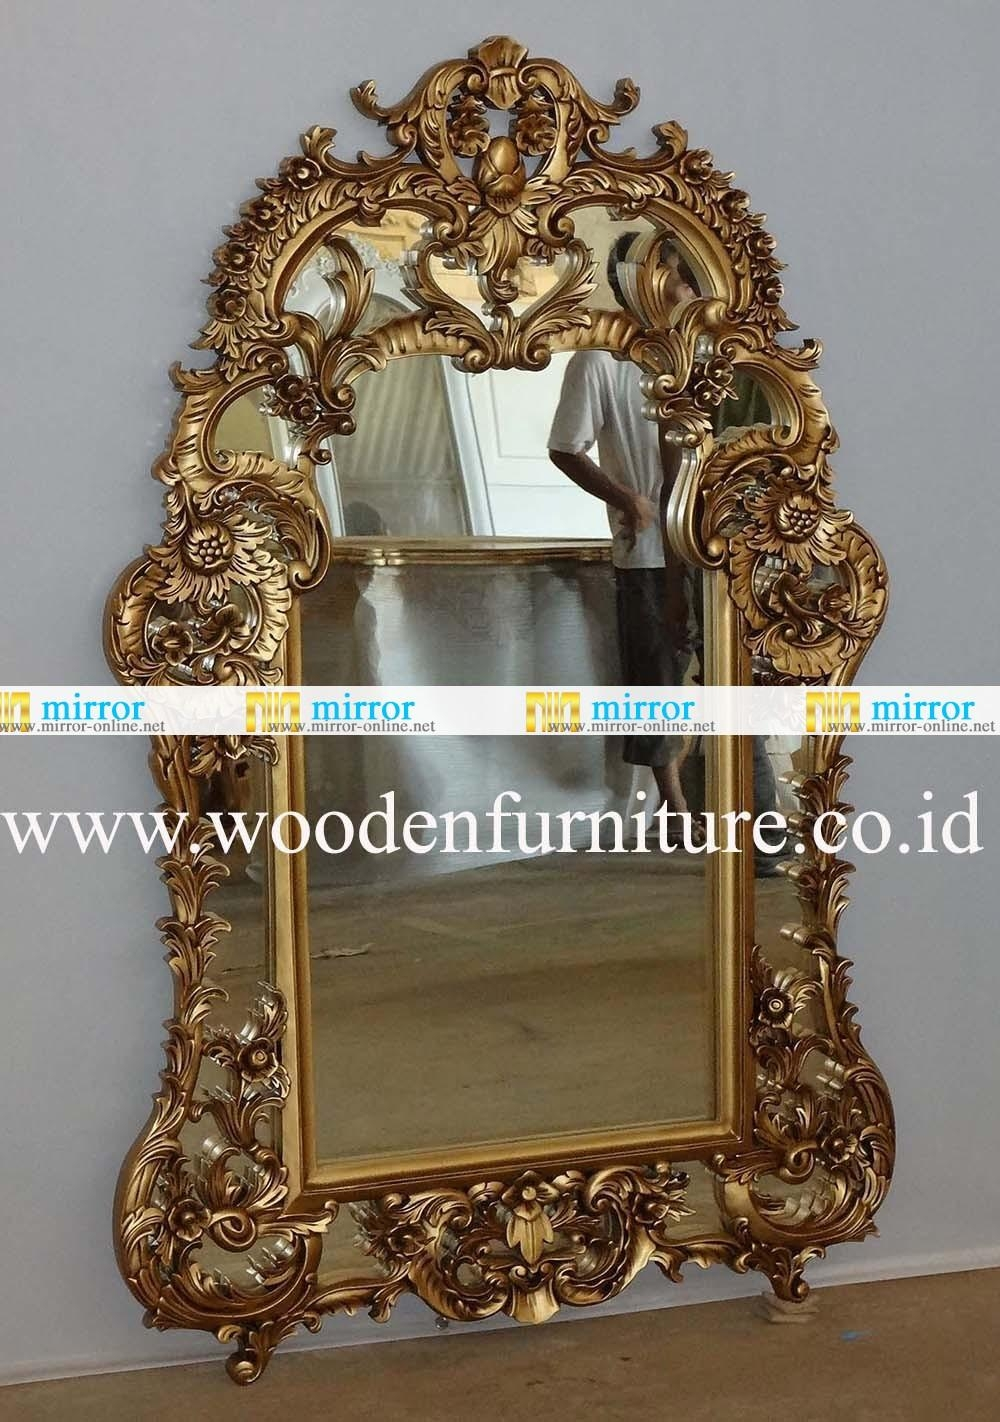 Mirror Manufacturers, Suppliers, Distributors For Sale Online Cv Throughout Reproduction Antique Mirrors (Image 19 of 20)